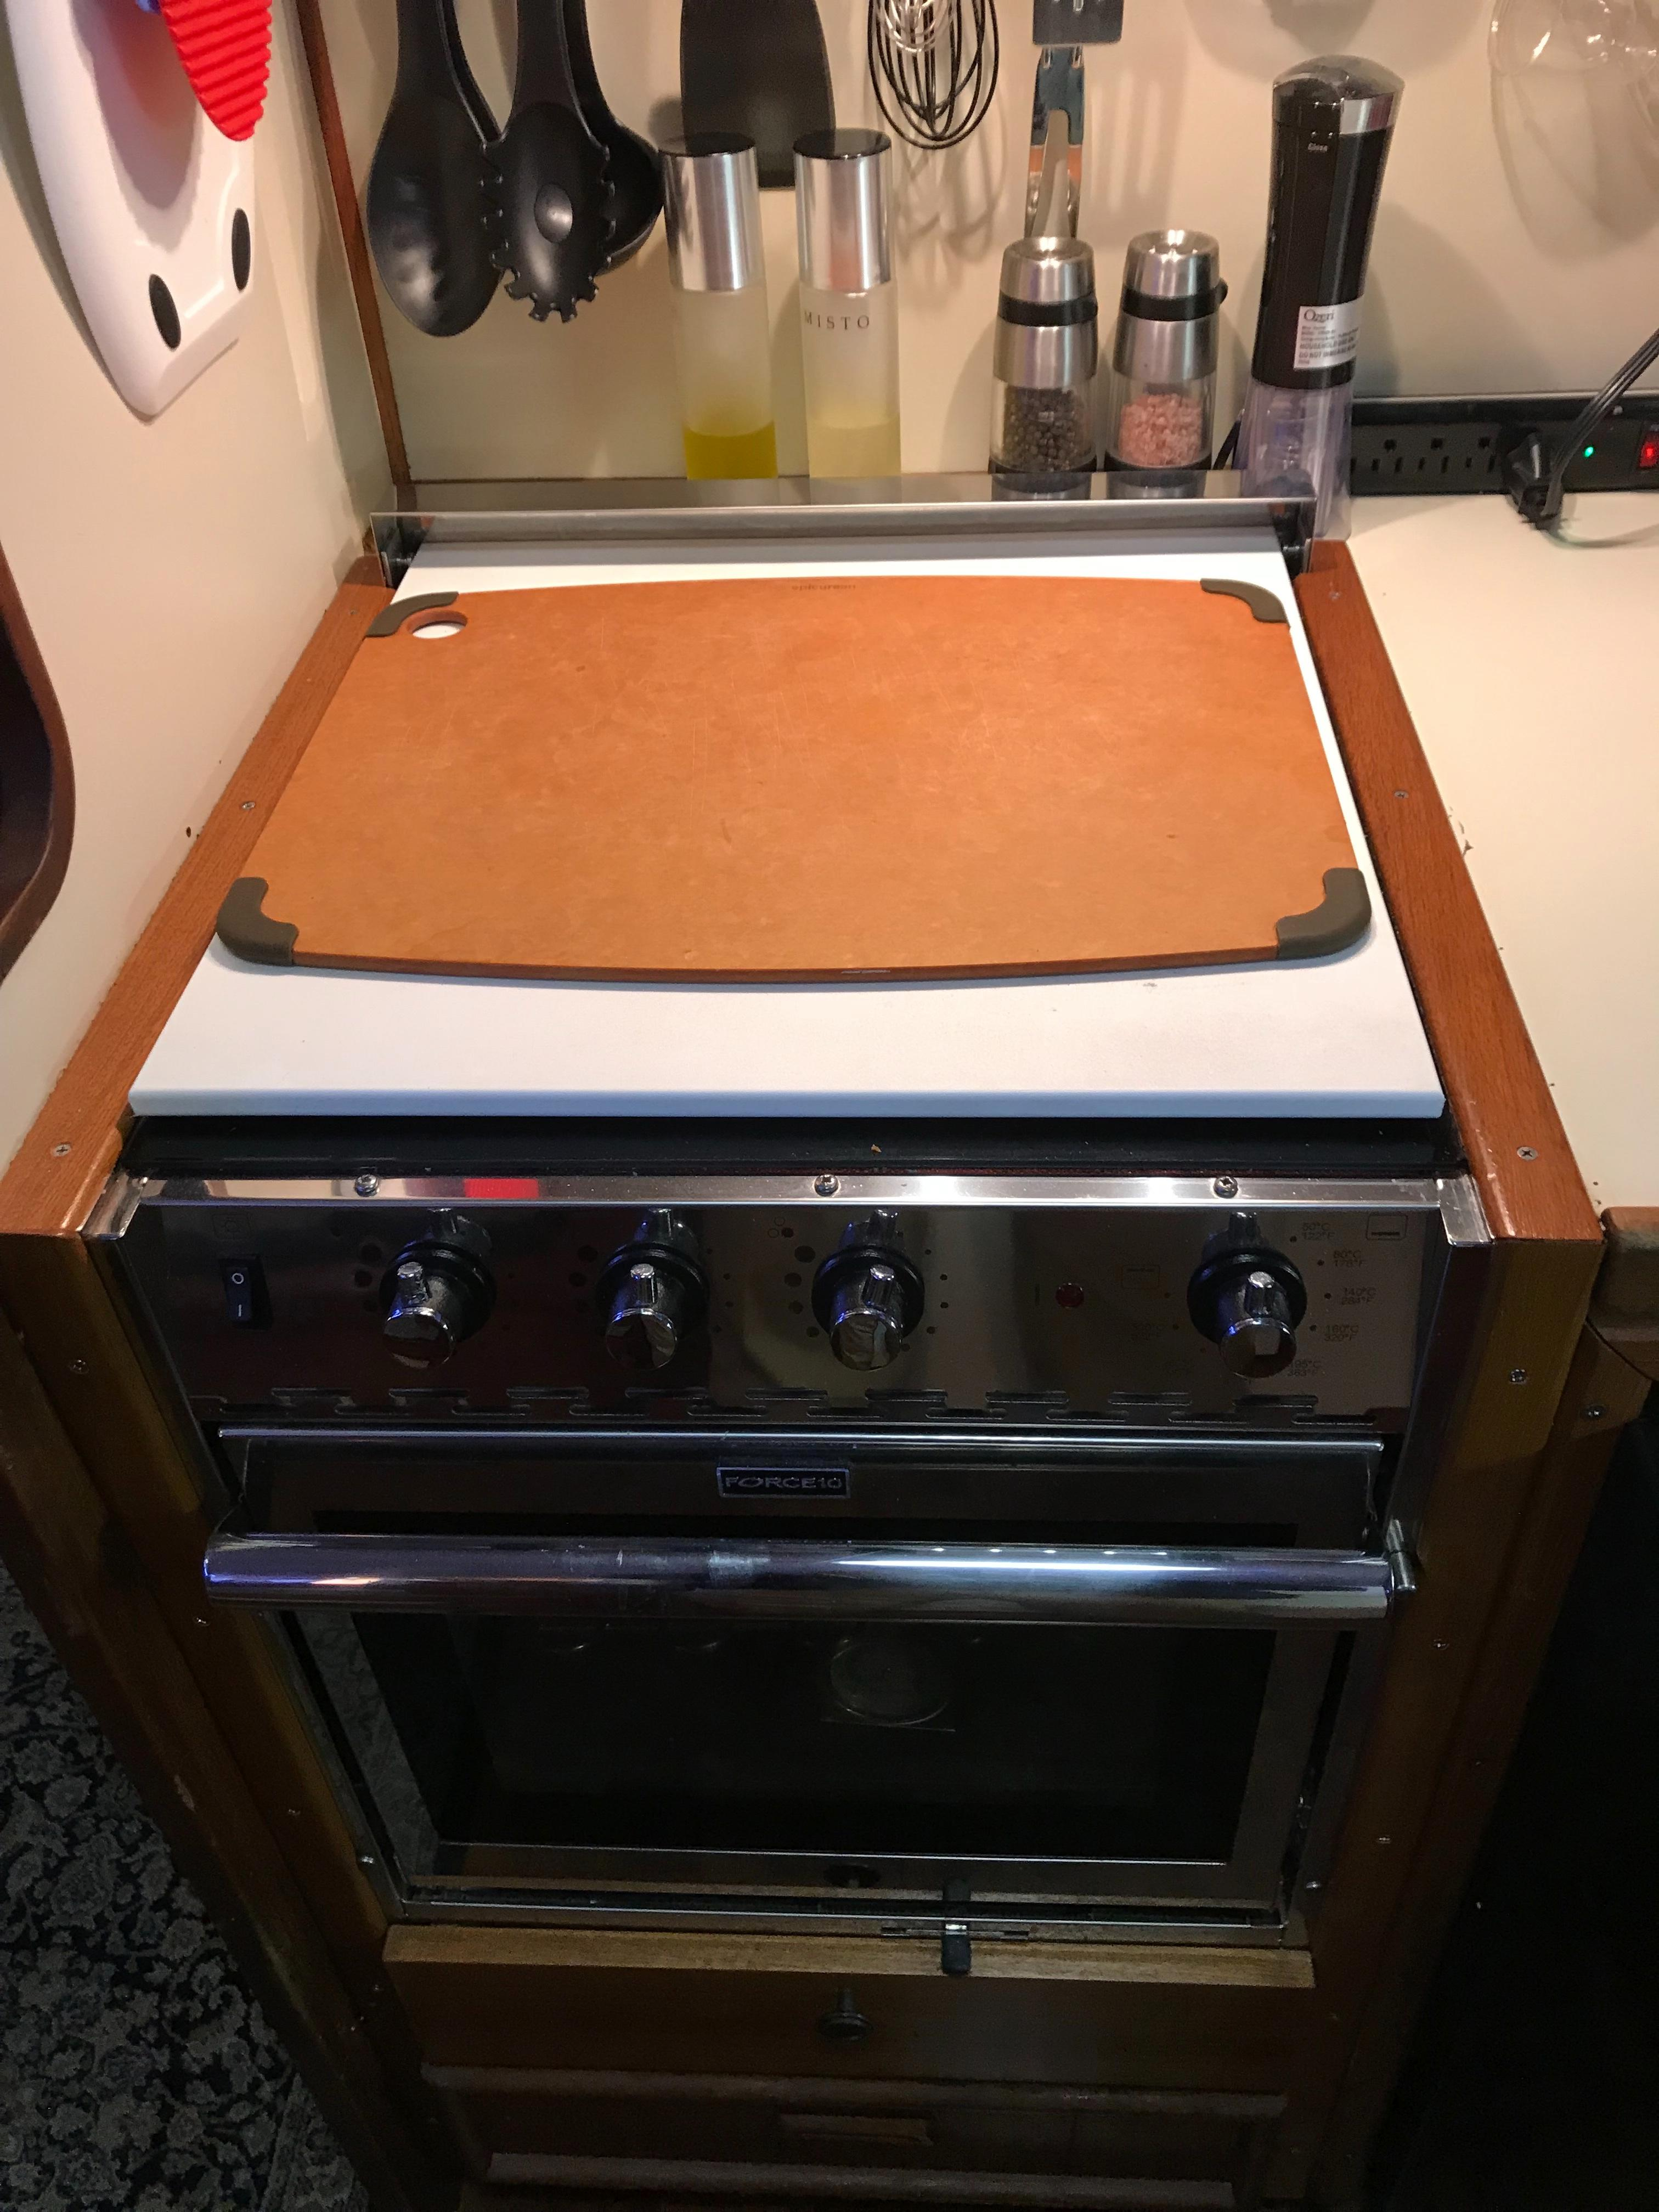 Chris-craft 46 Constellation - Electric Stovetop w/oven